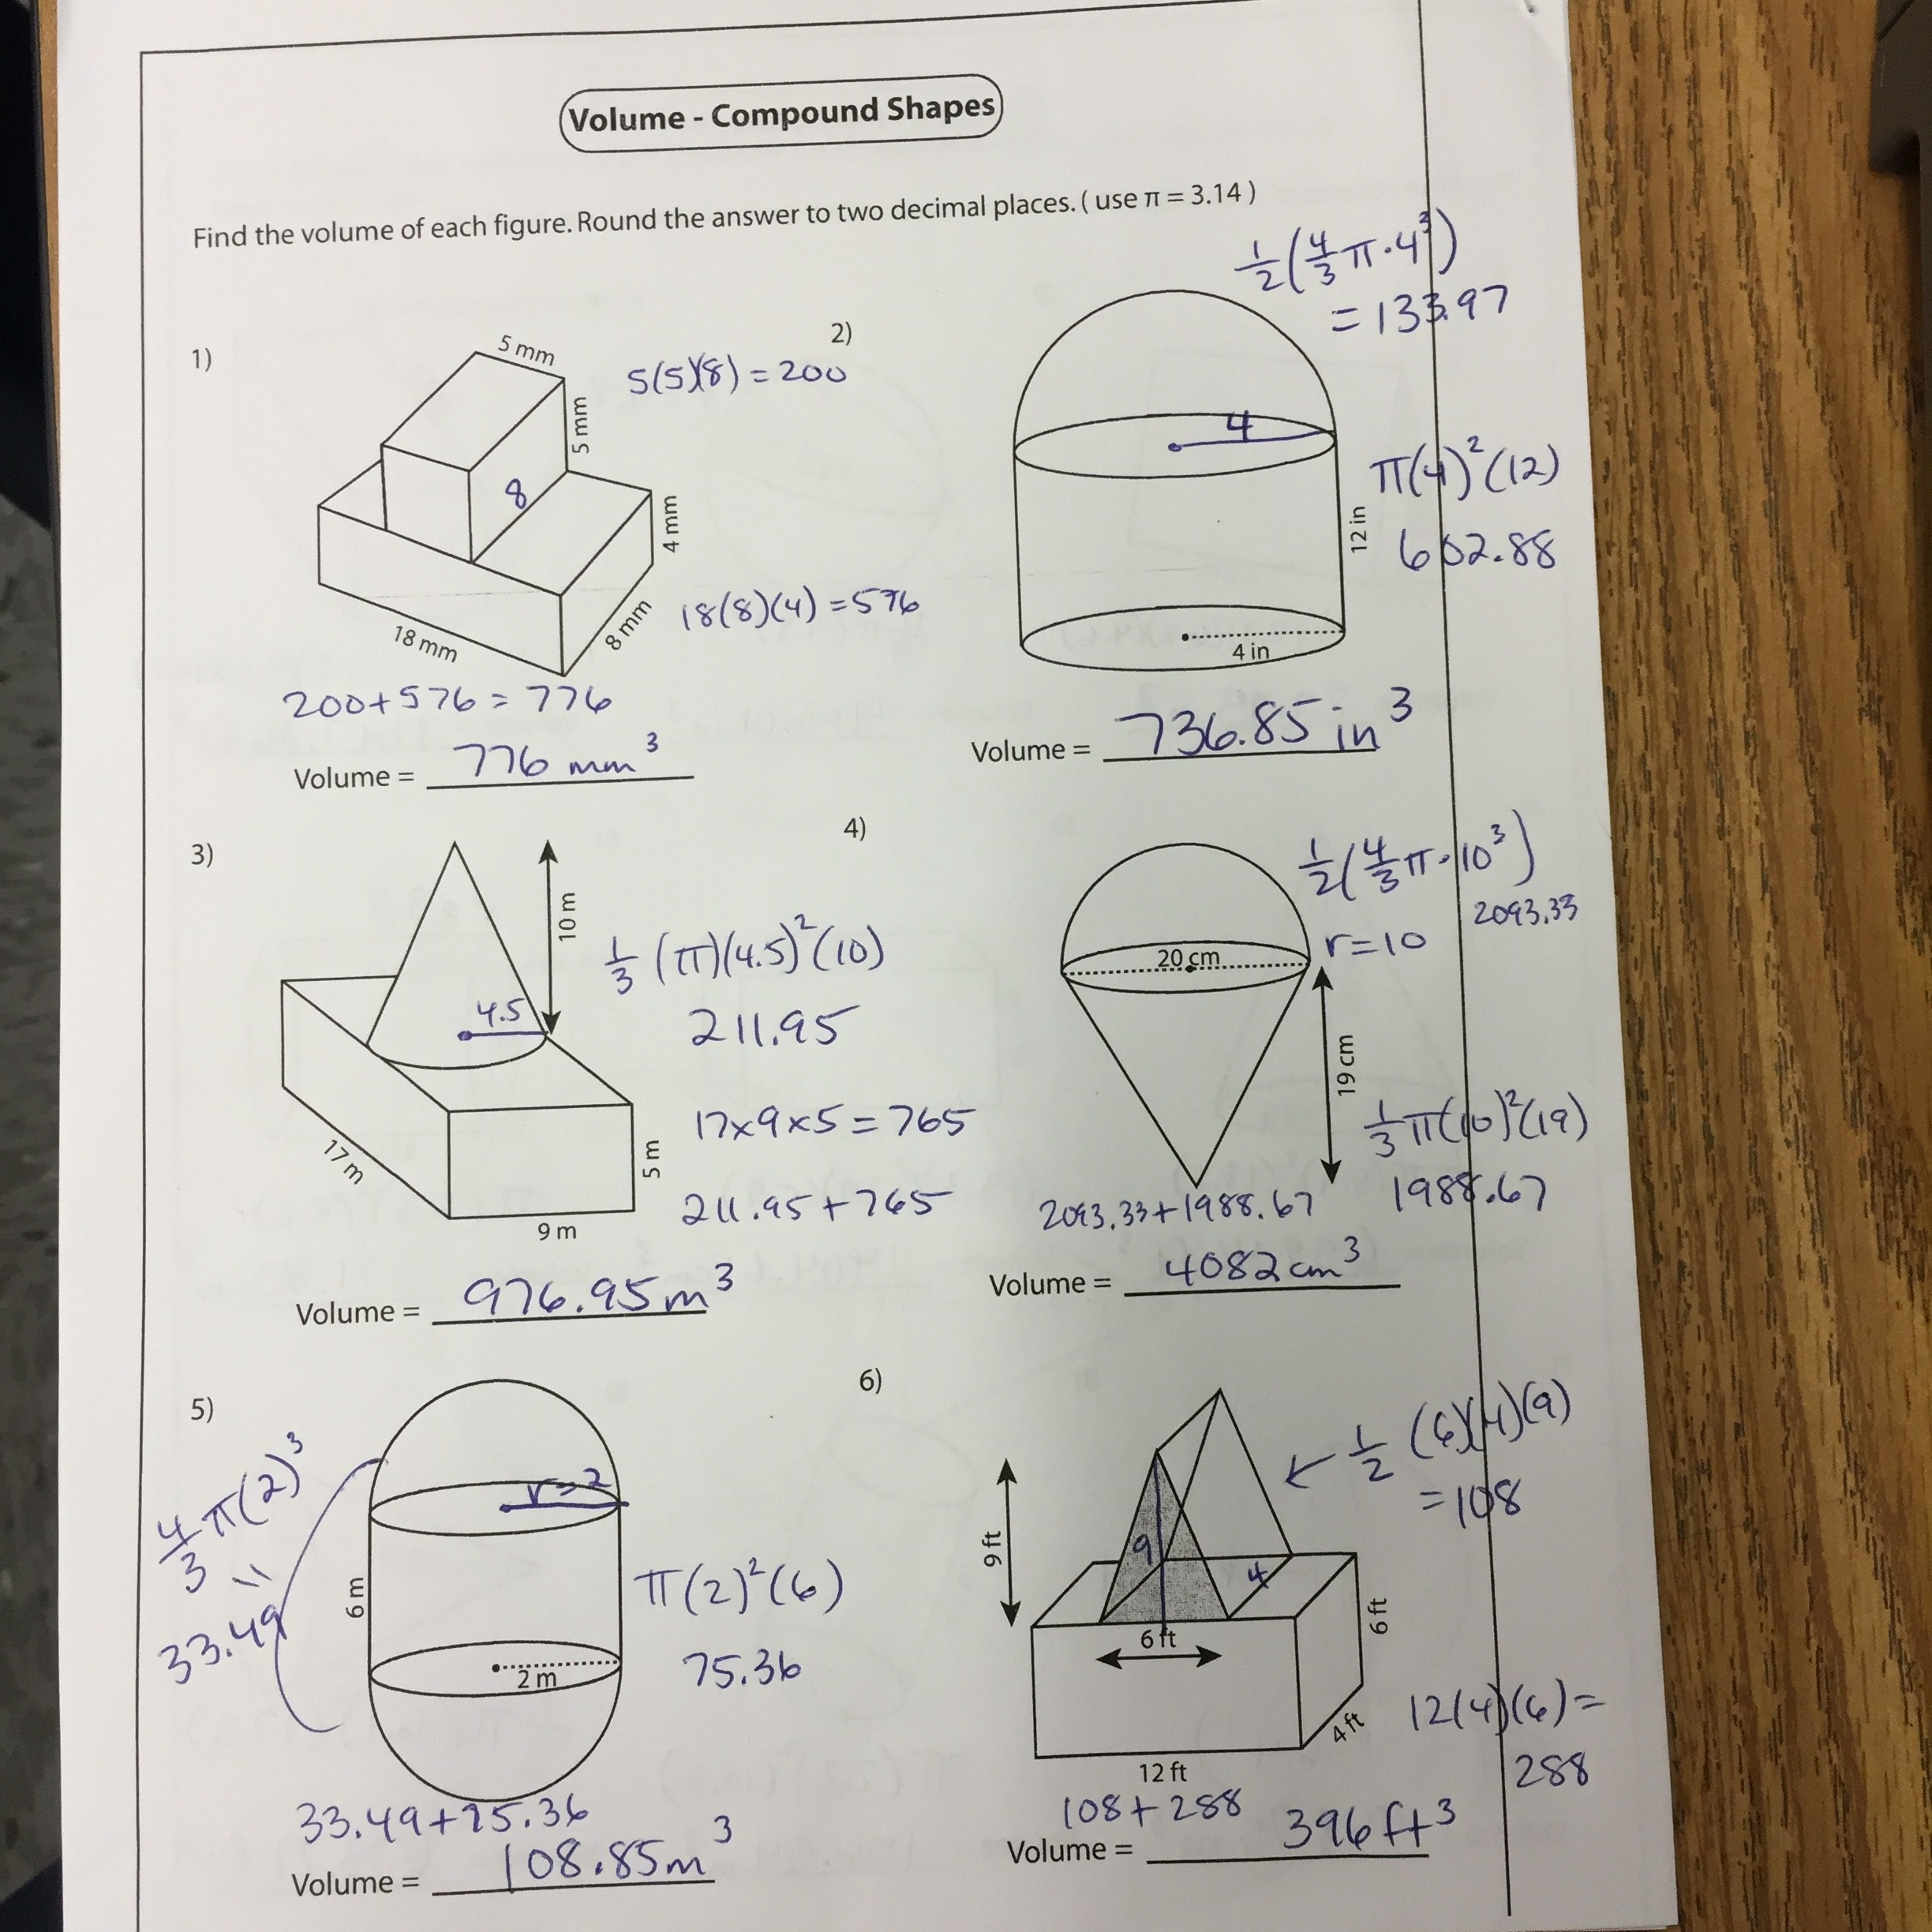 Volume Compound Shapes Worksheet Answers